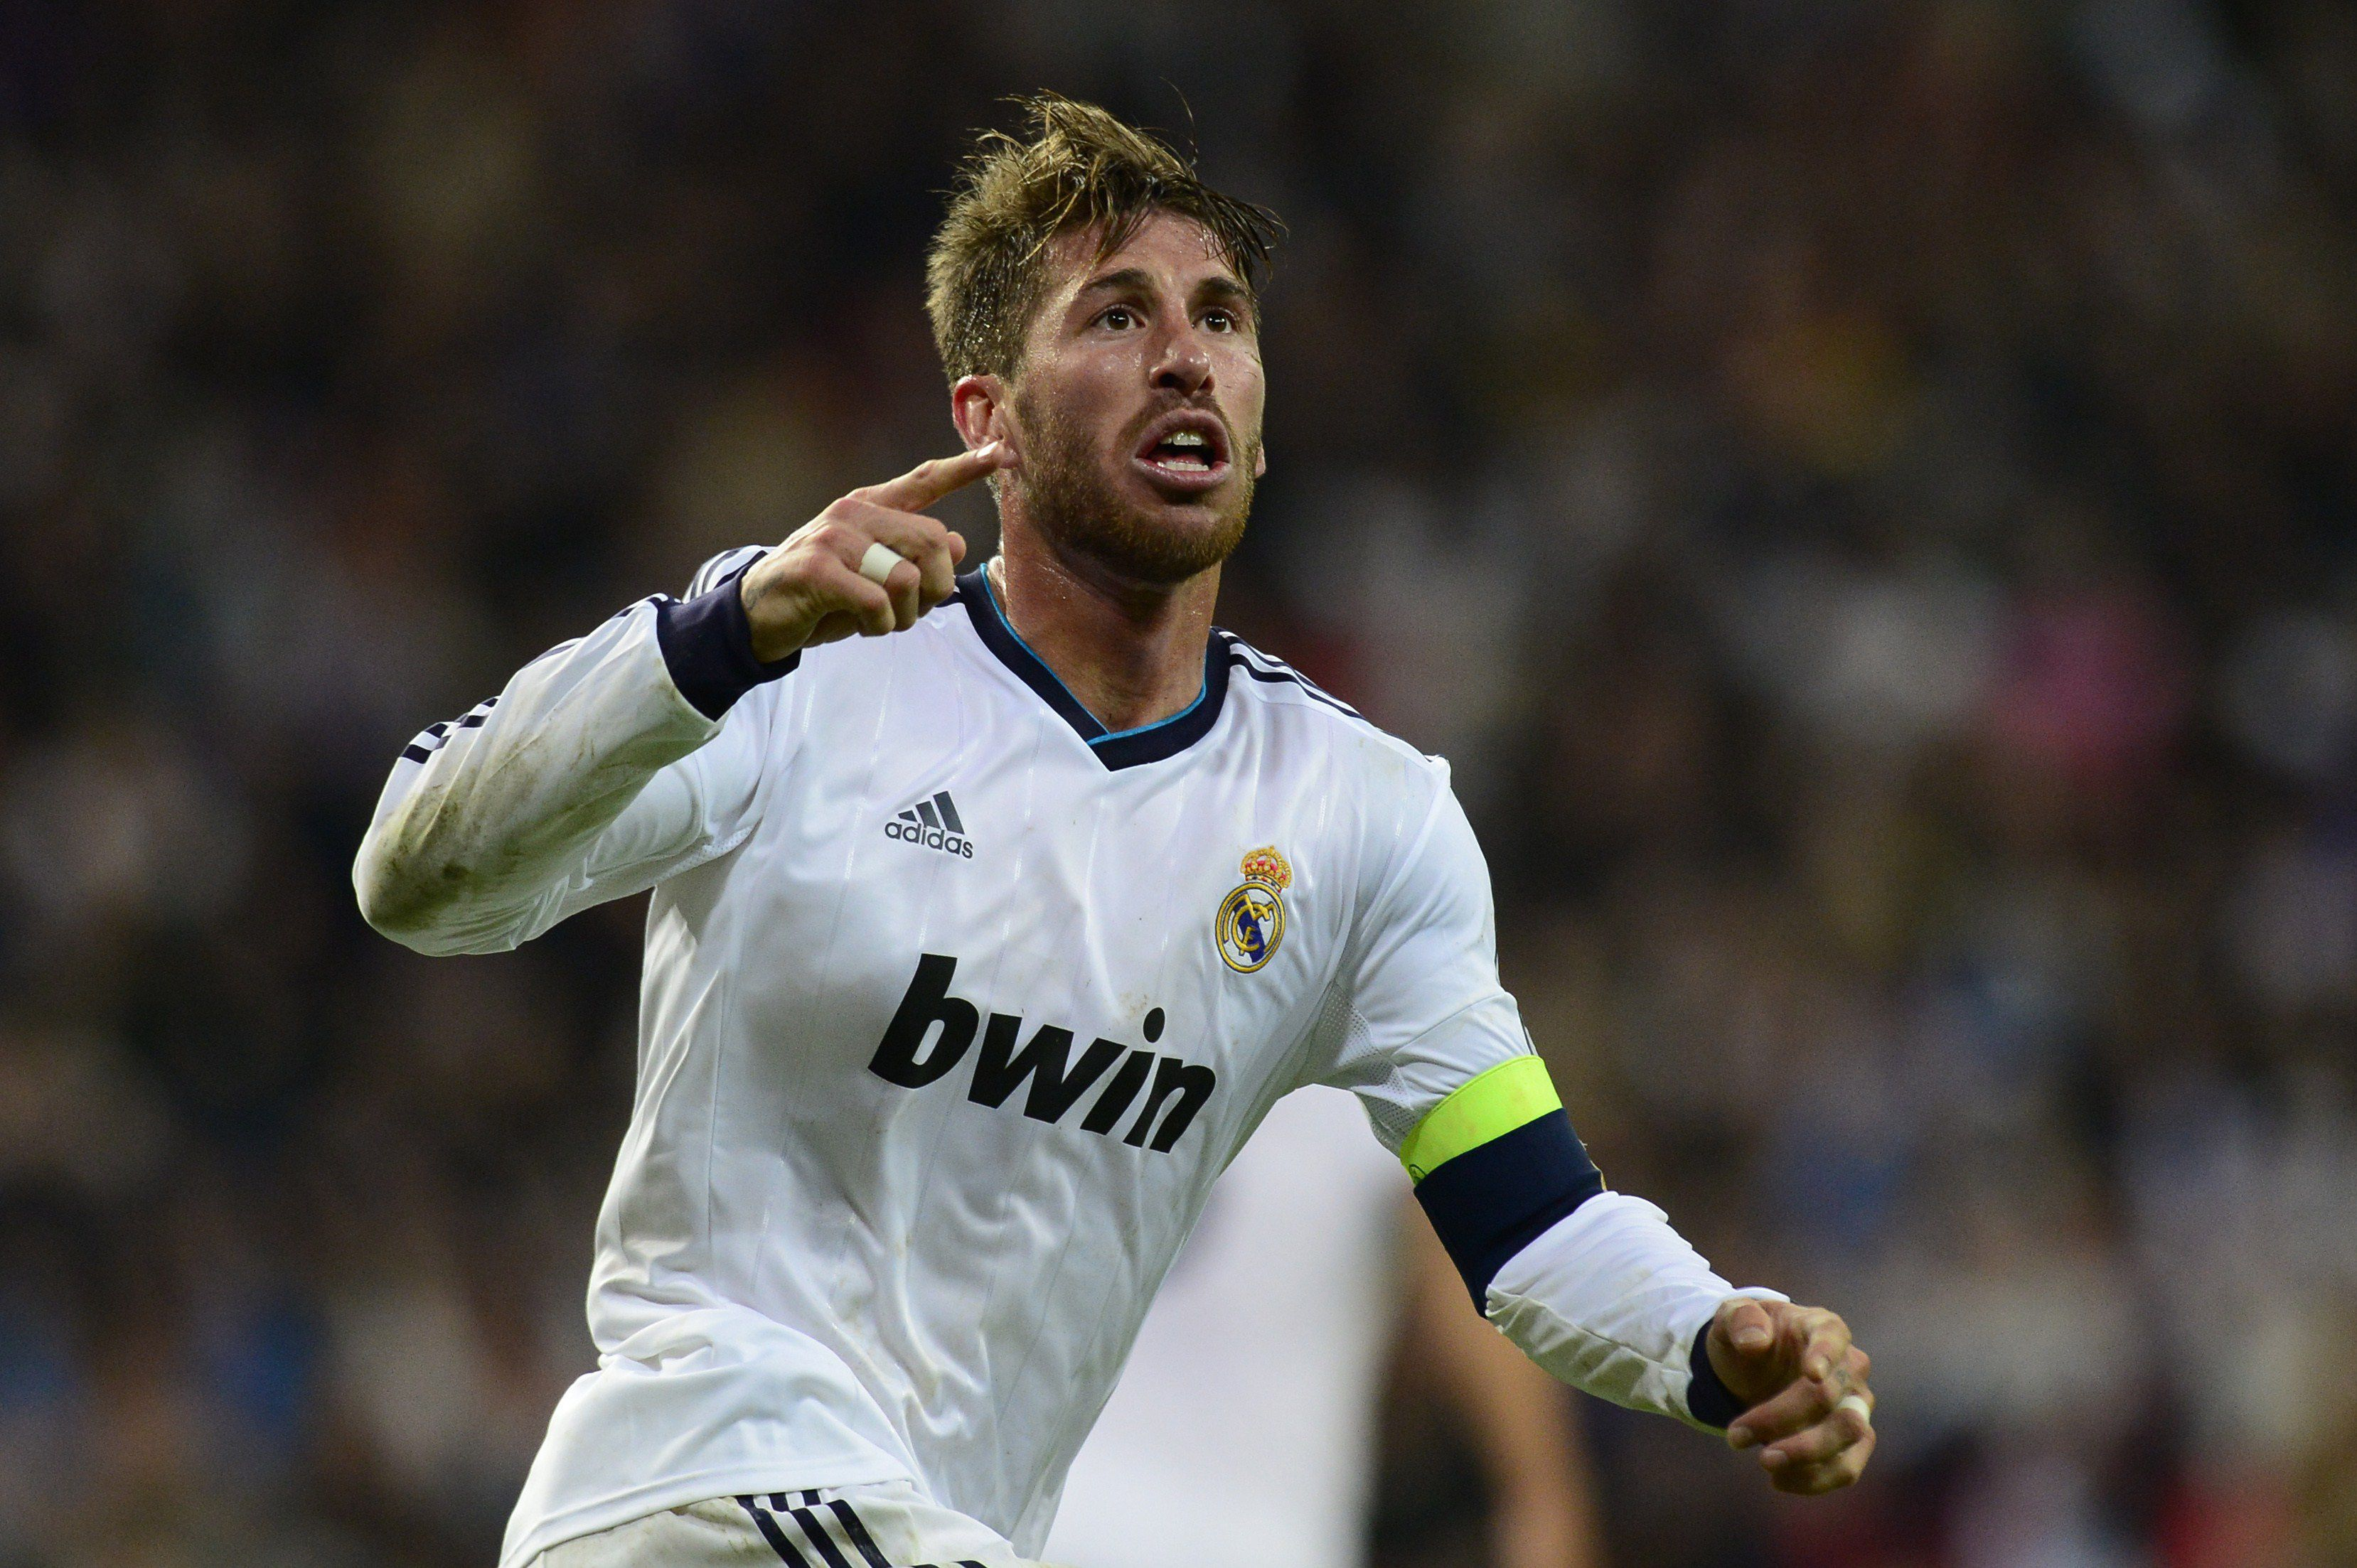 Sergio ramos wallpapers images photos pictures backgrounds - Sergio madrid ...